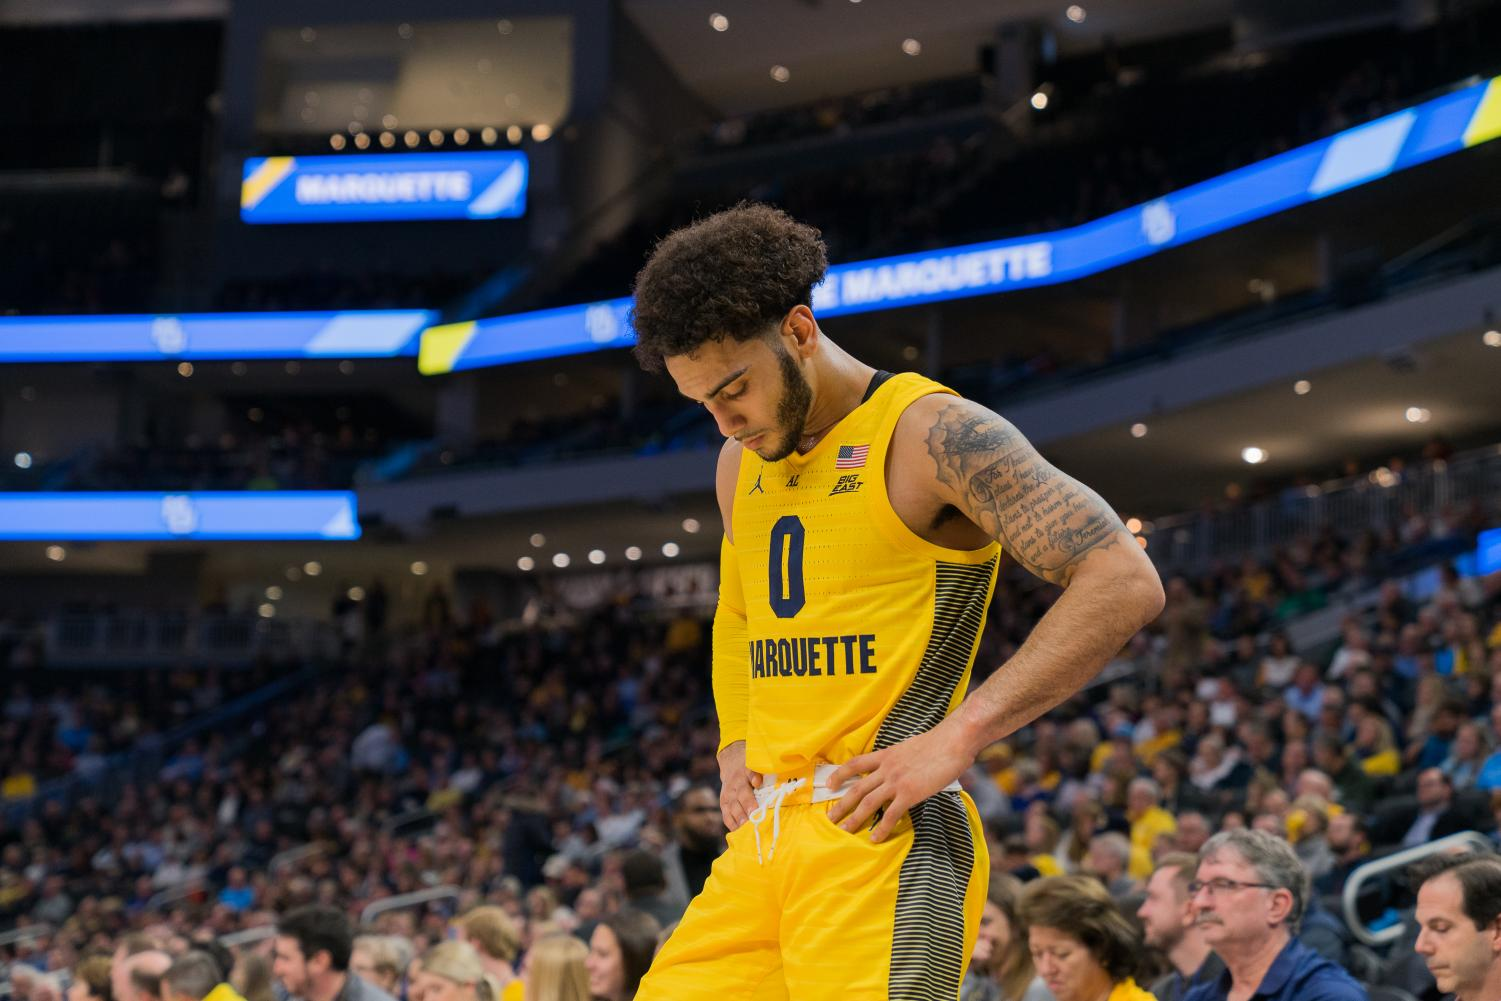 Senior guard Markus Howard scored 38 points and became the program's all-time leading scorer in Marquette's 88-53 win over Loyola Maryland Nov. 5 at Fiserv Forum.